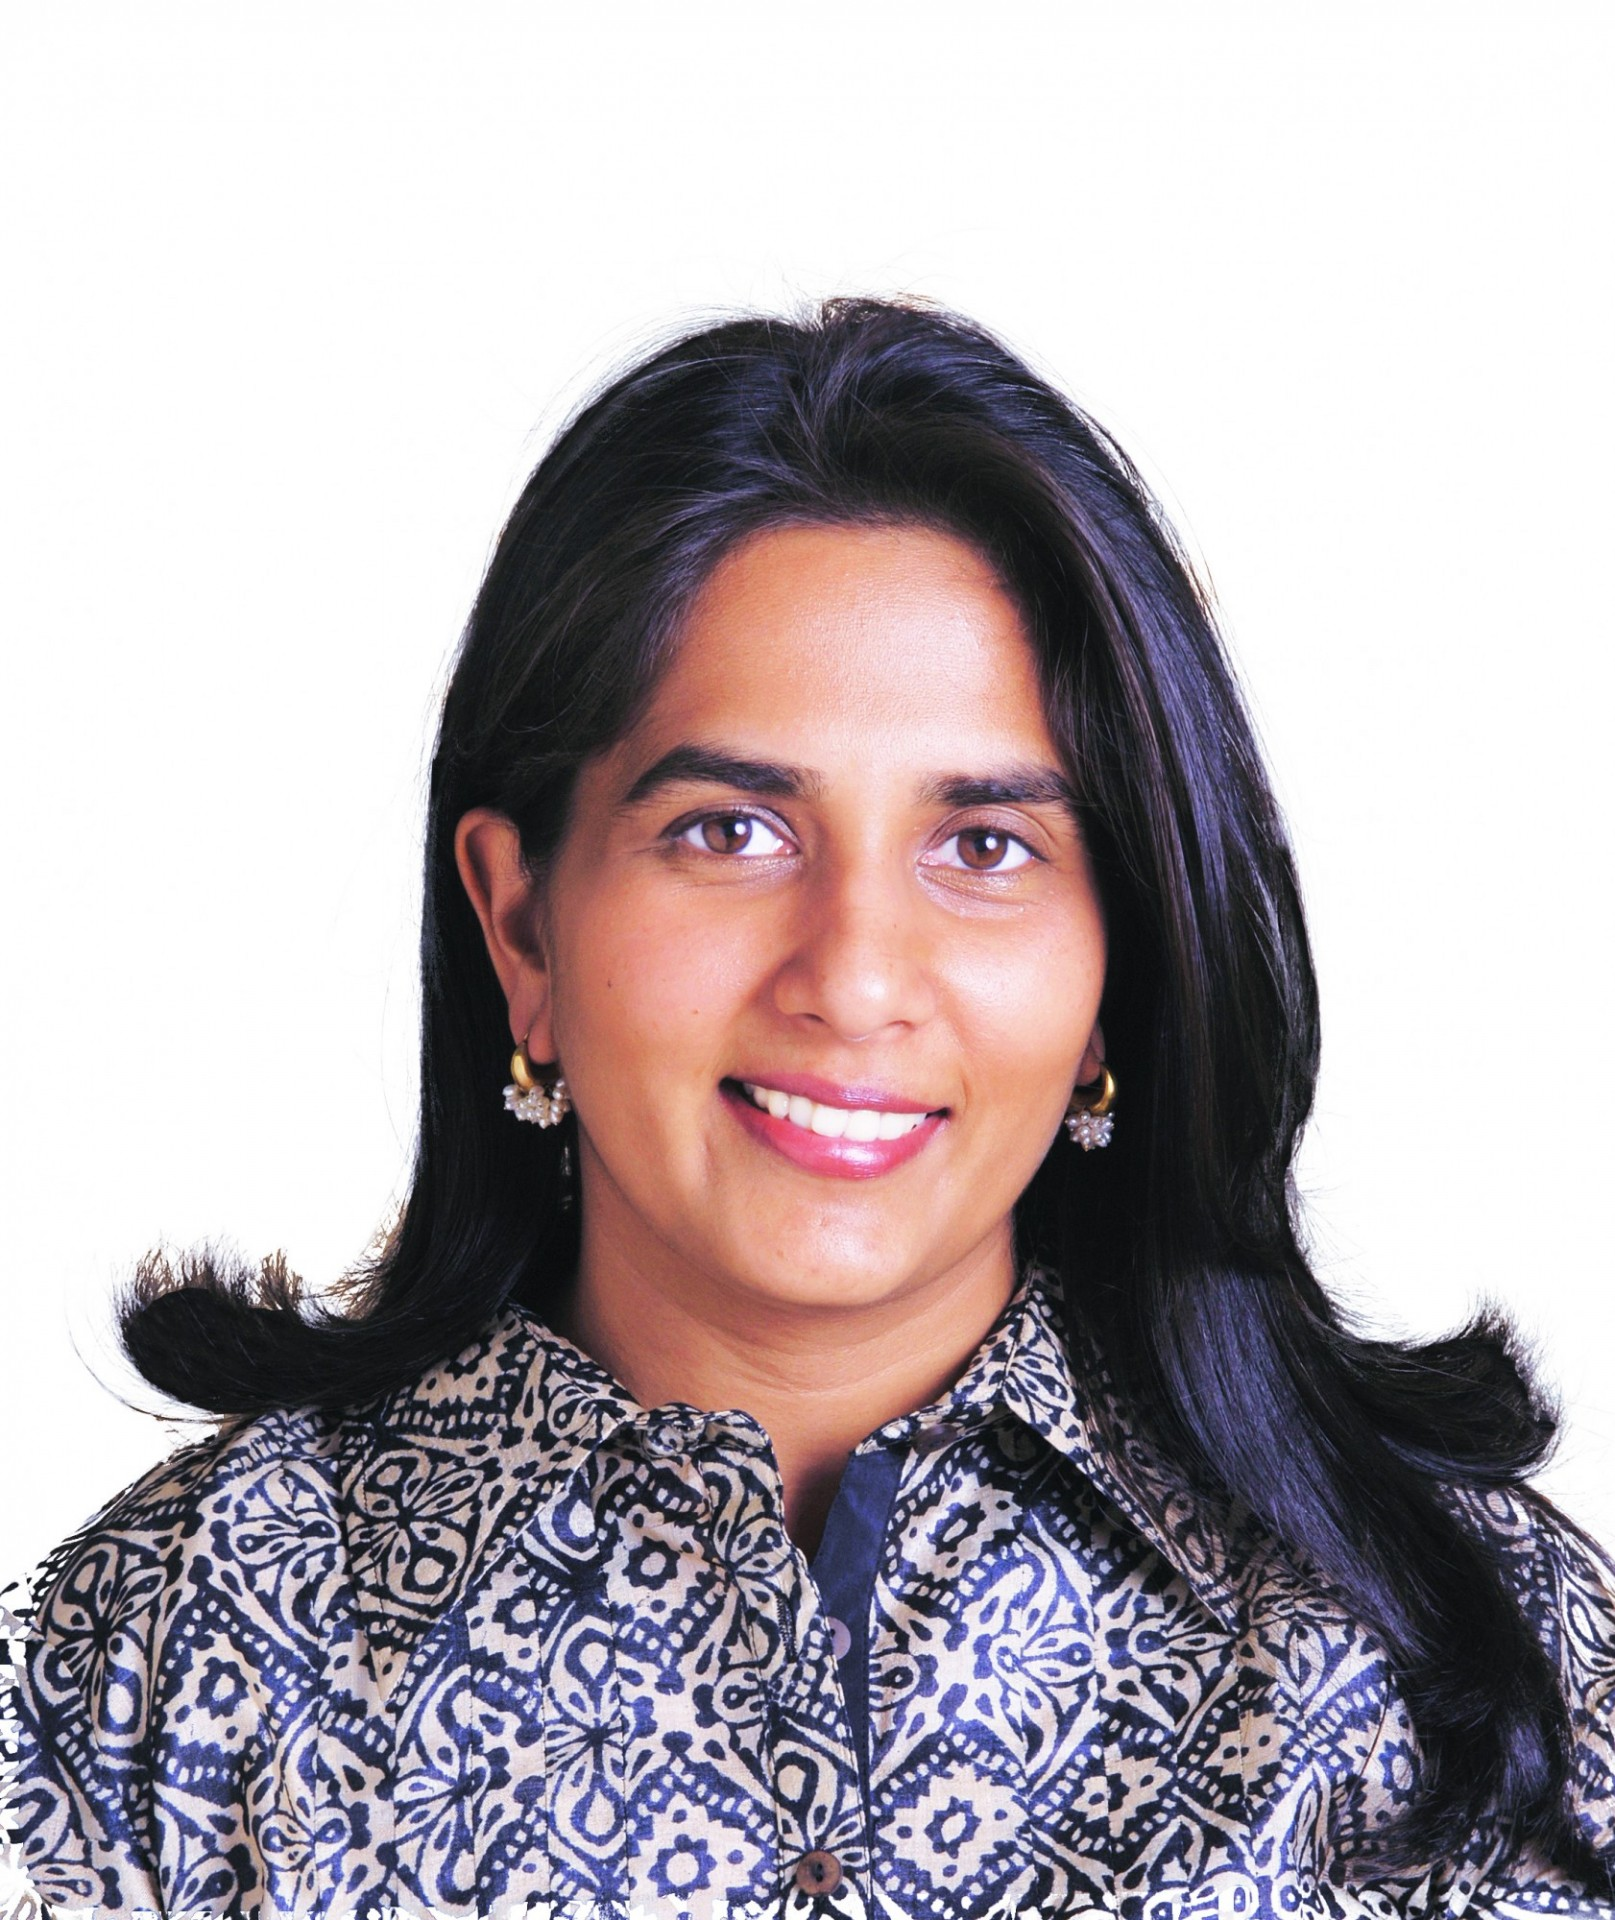 photo of Aparna Piramal Raje